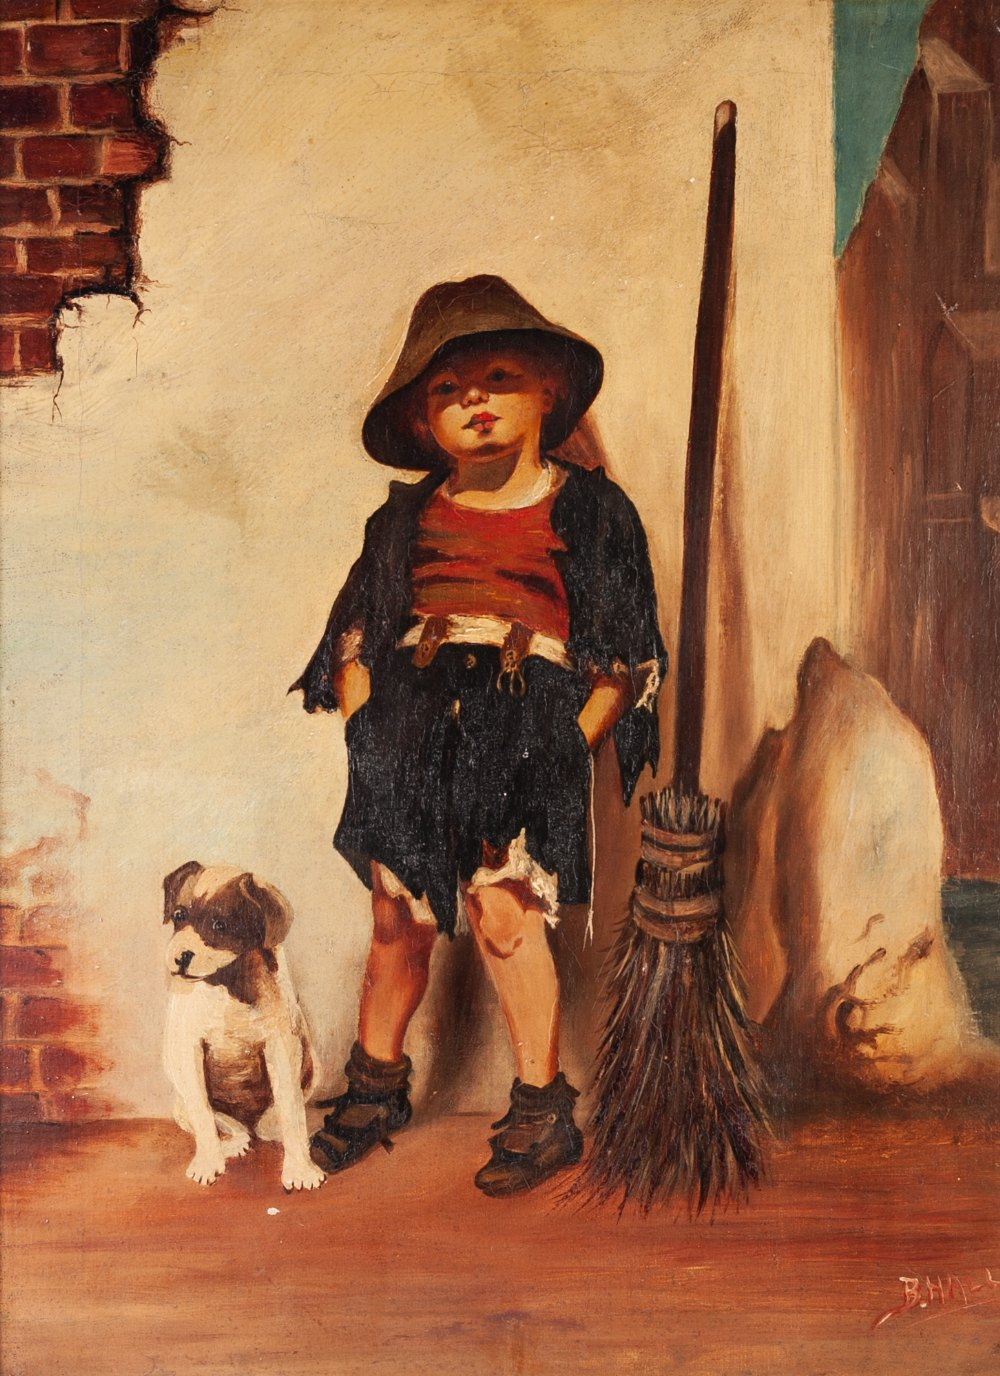 Lot 255 - B.HALL (TWENTIETH CENTURY) OIL PAINTING ON BOARD Young boy leaning against a wall with dog and broom